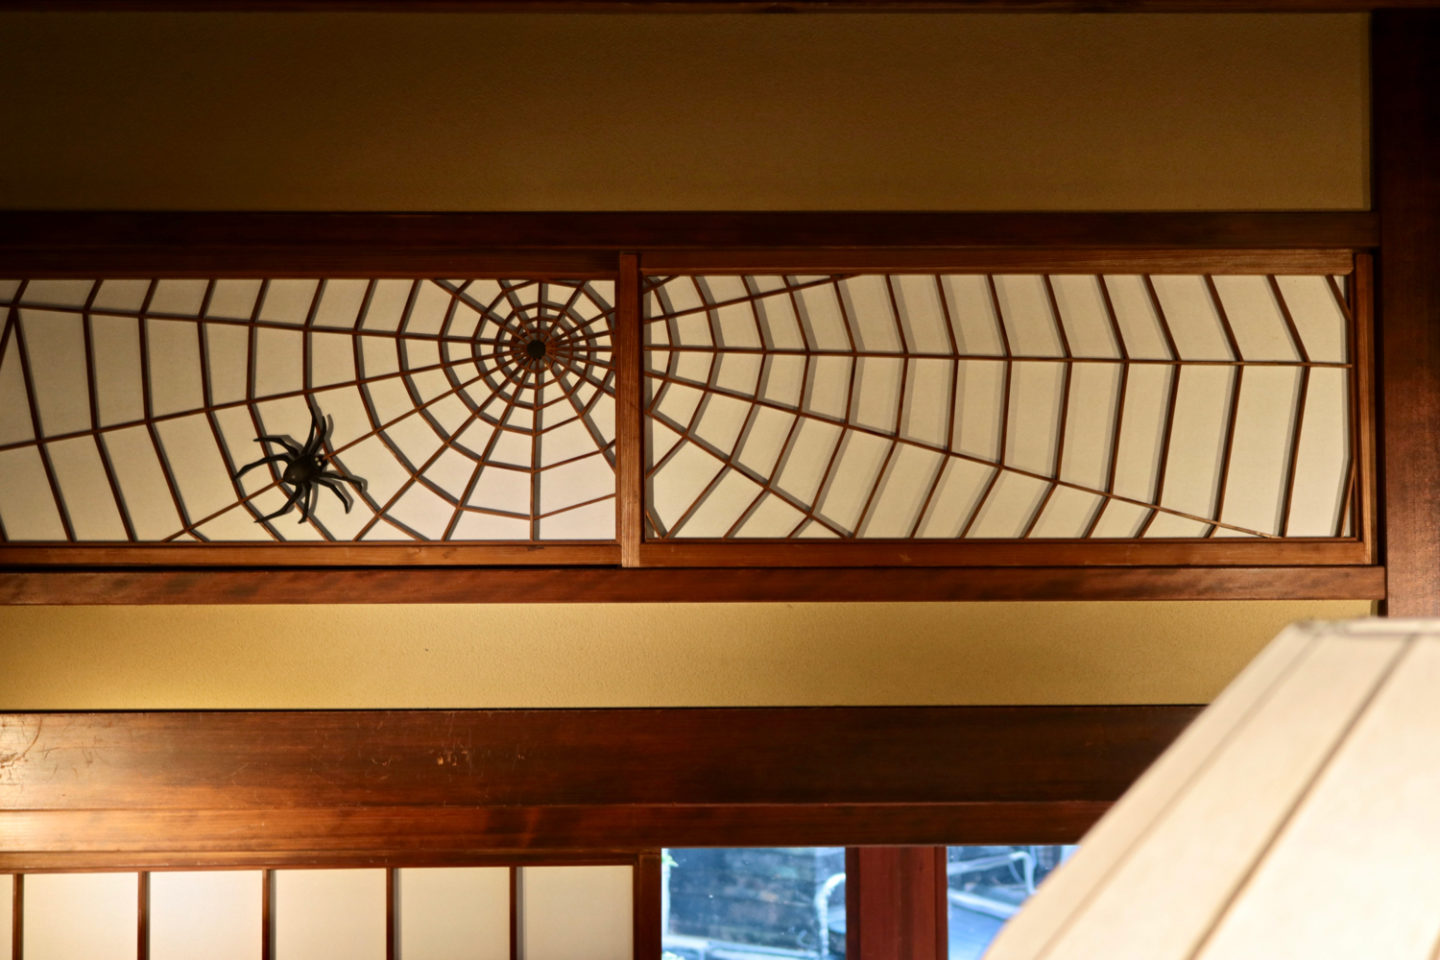 """""""Ranma"""" transom panels depicting spiders and spider webs"""